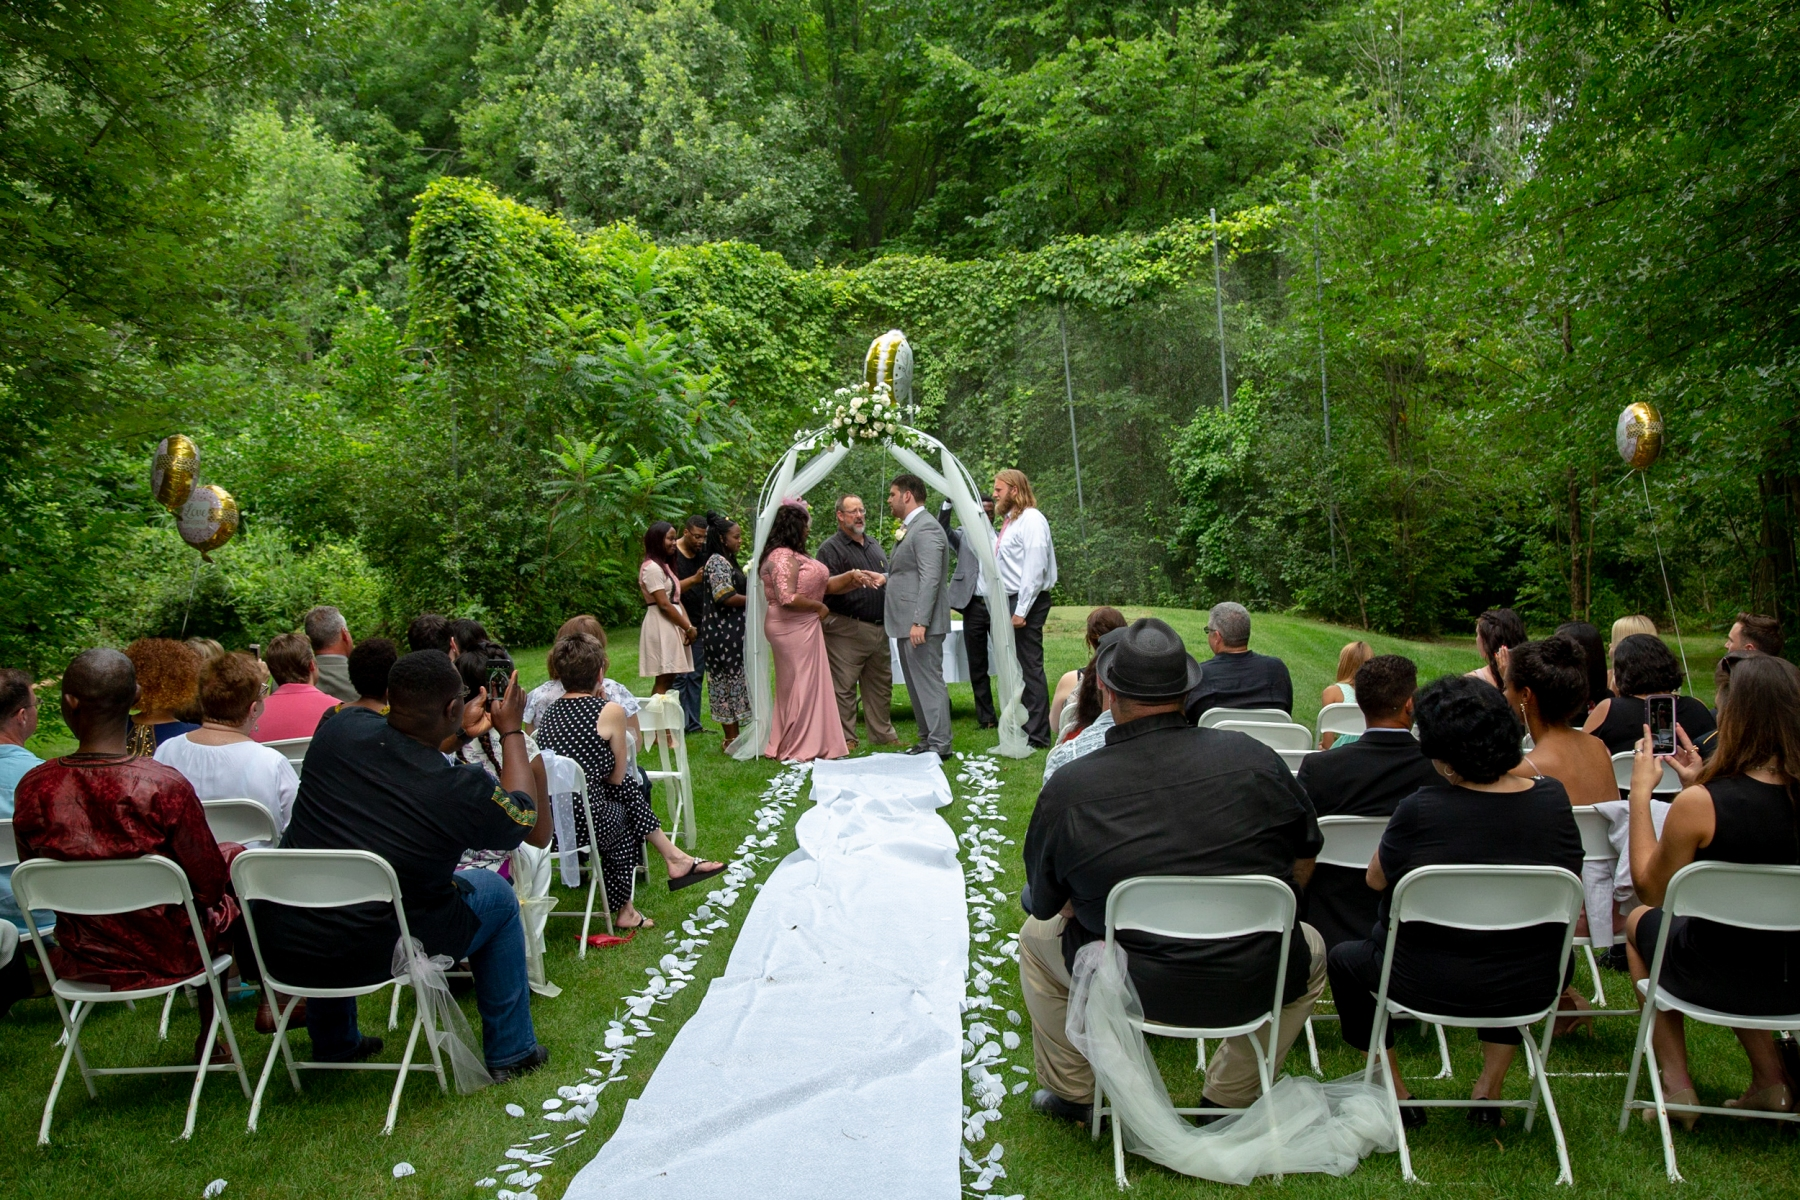 Pamela marries her partner, Jordan, at their wedding in the backyard of his family home in New Baltimore, Mich. Pamela's Congolese friends from Freedom House attended the ceremony, which was live-streamed for friends and family watching from Brazzaville.